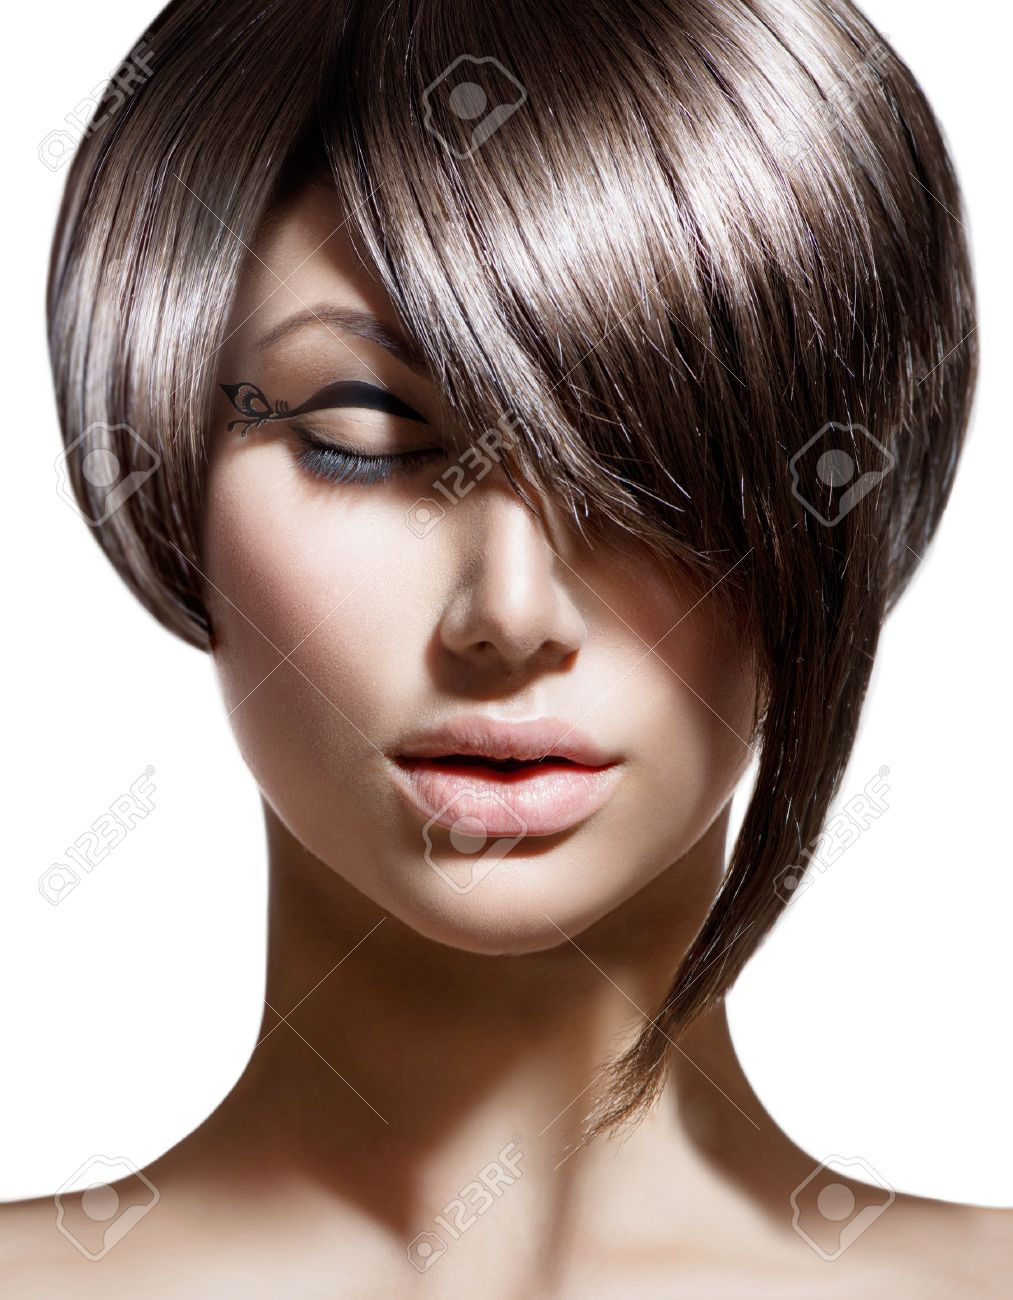 Fashion Haircut Hairstyle Stylish Fringe Stock Photo Picture And